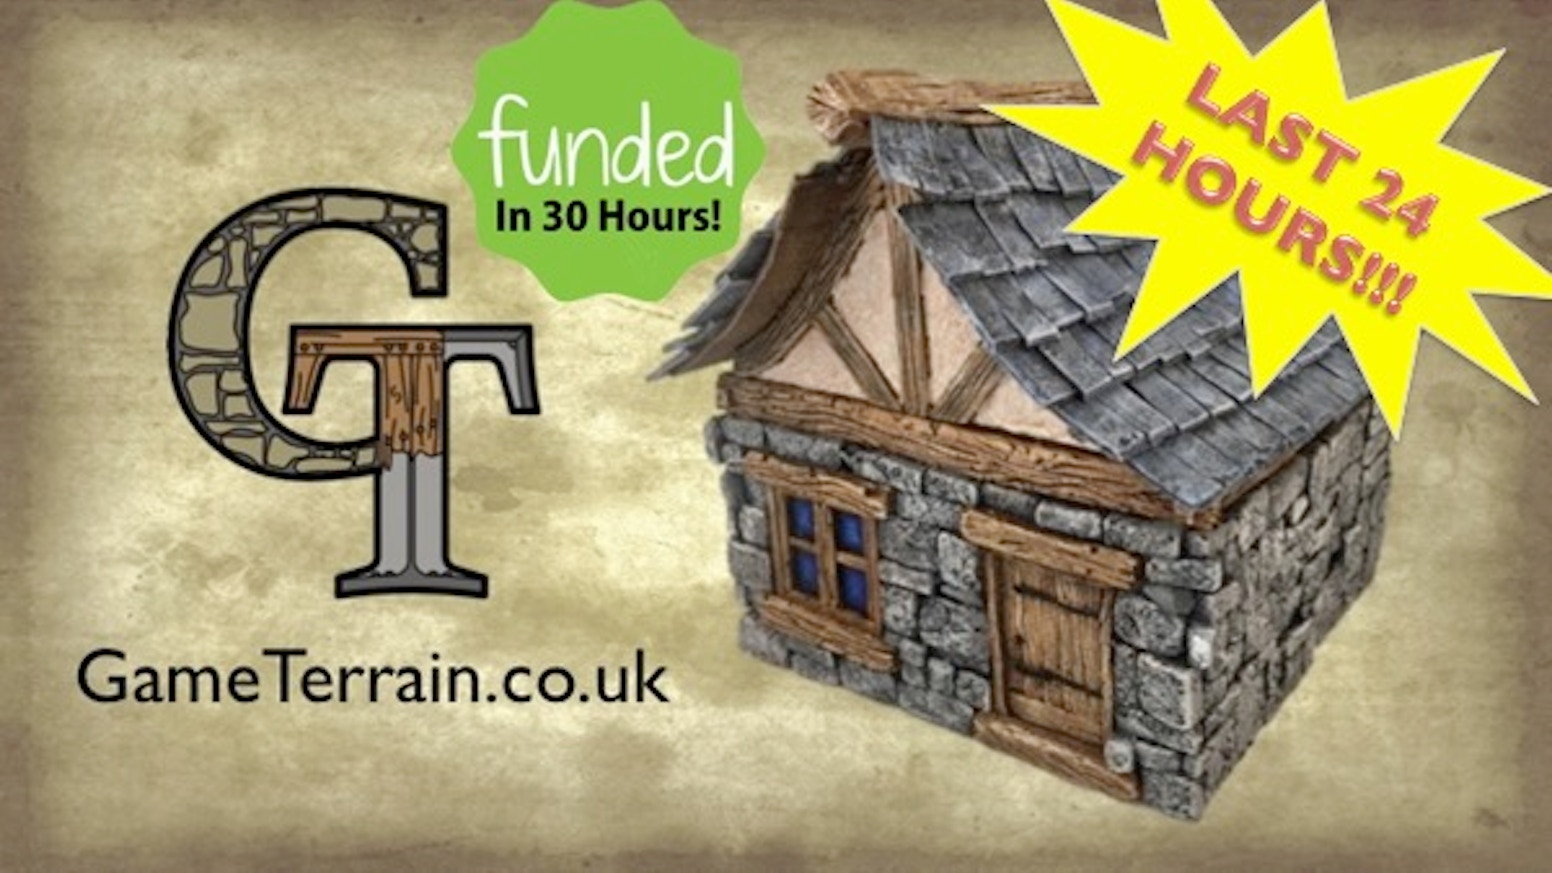 Our aim is simple; produce and supply quality table-top terrain buildings for fantasy gaming. To do this, we need your help!